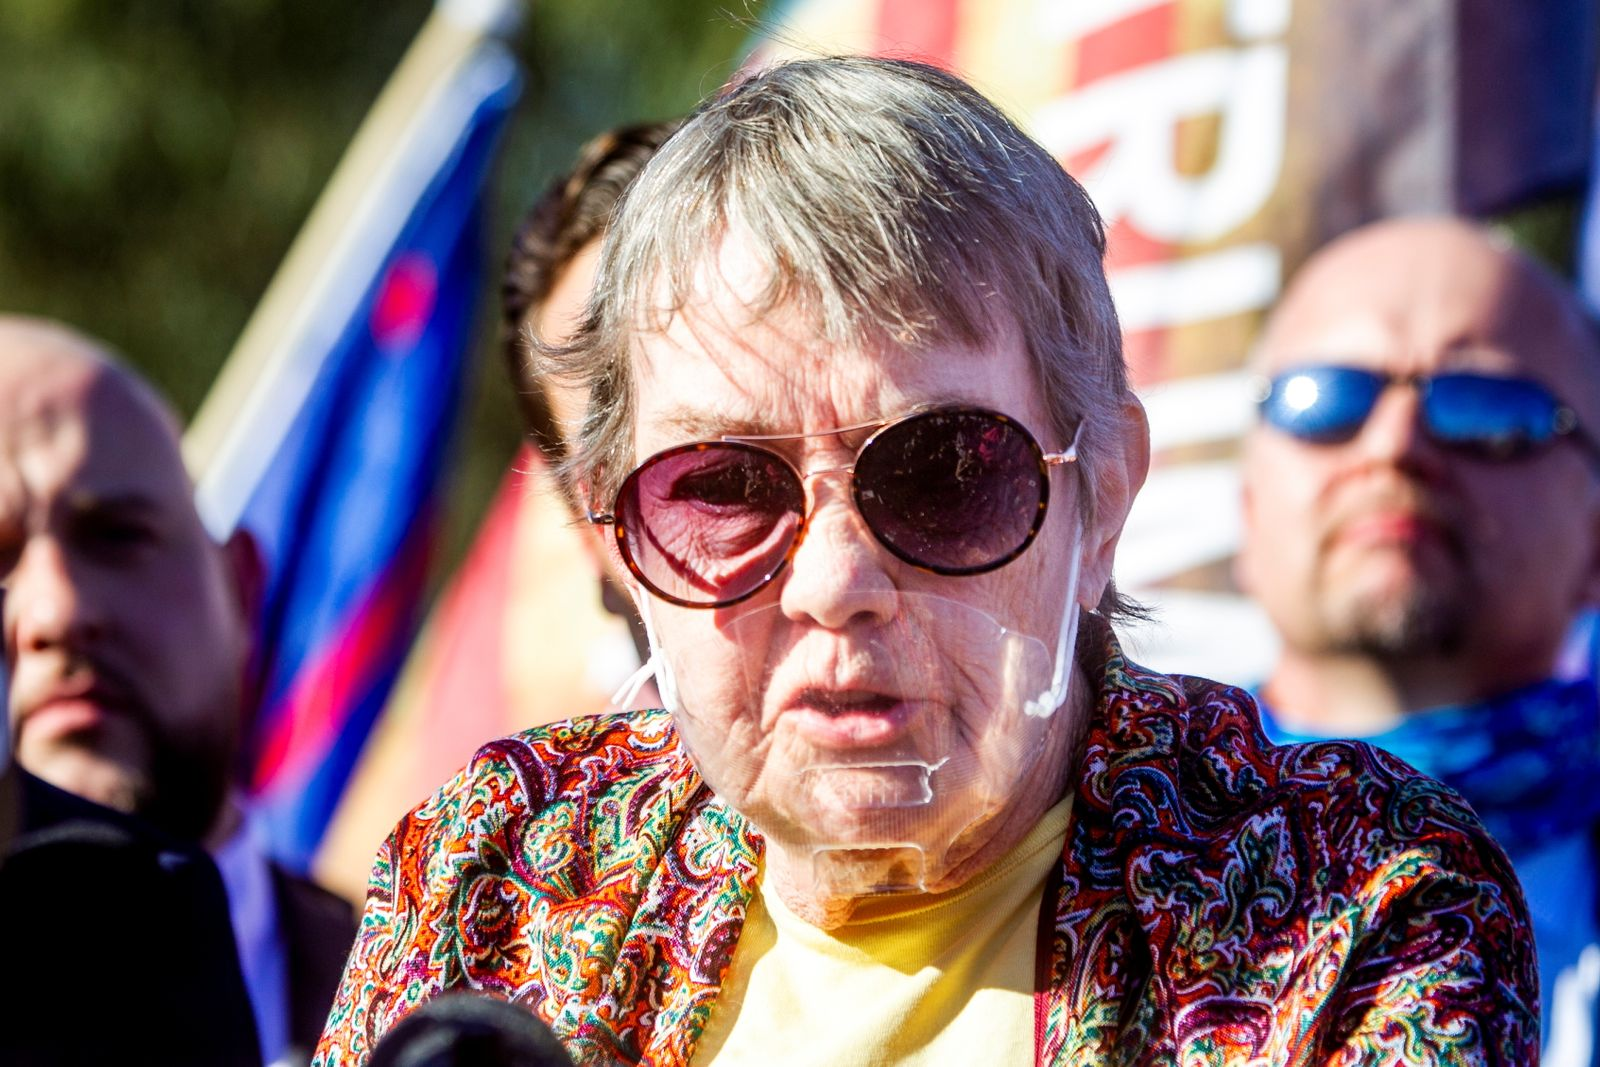 Jill Stokke, who says she was denied her vote, speaks during a Trump campaign press conference outside the Clark County Election Center in North Las Vegas